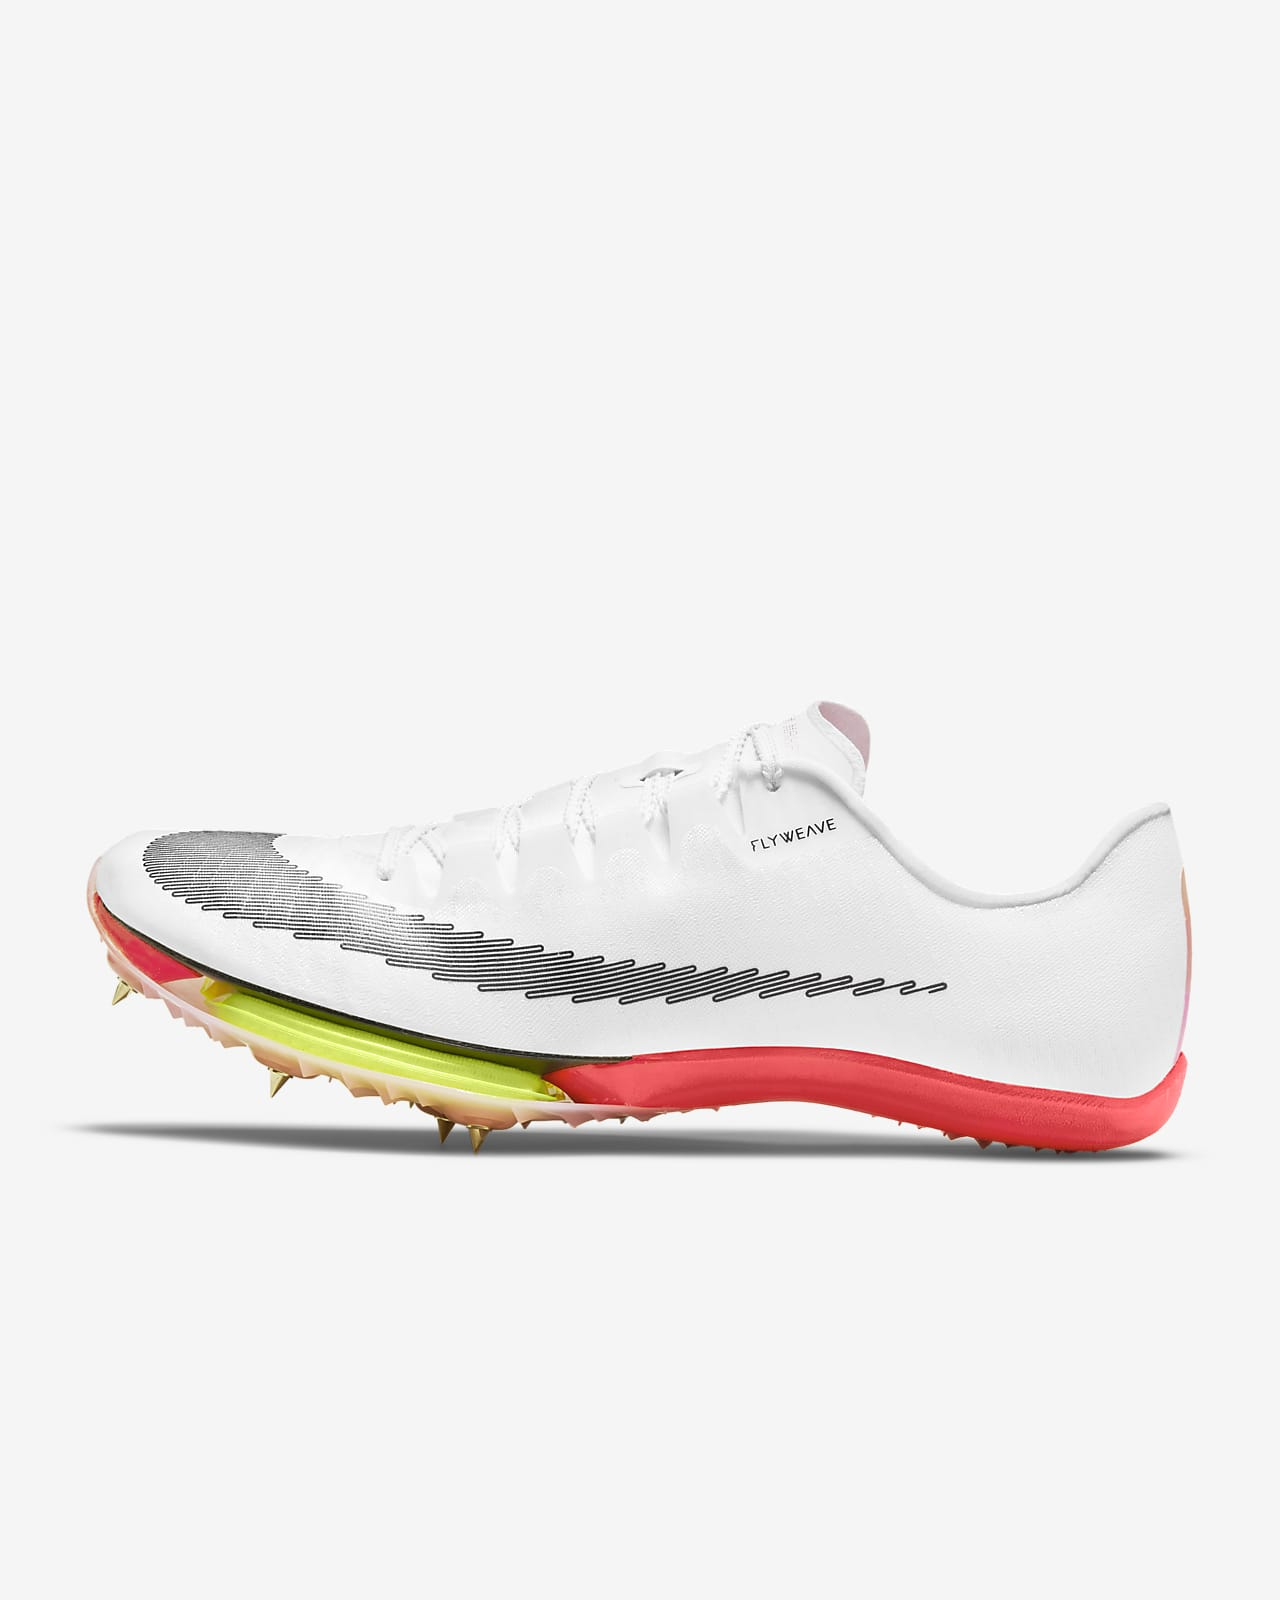 Nike Air Zoom Maxfly Track and field sprinting spikes